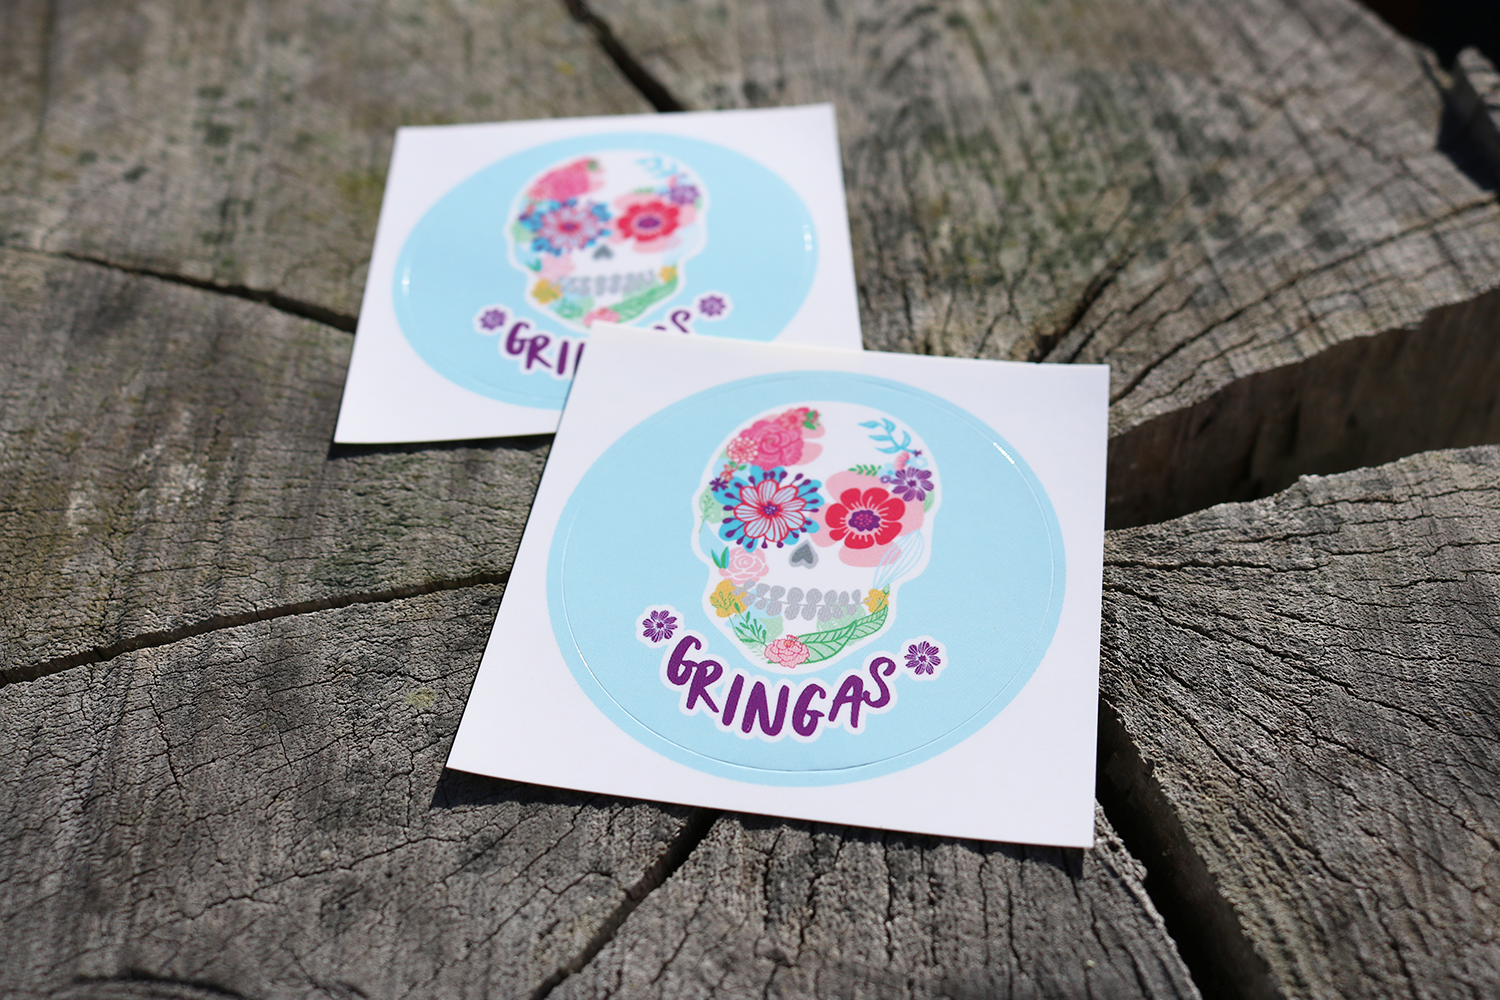 Gringas stickers - The kids loved these on opening day!